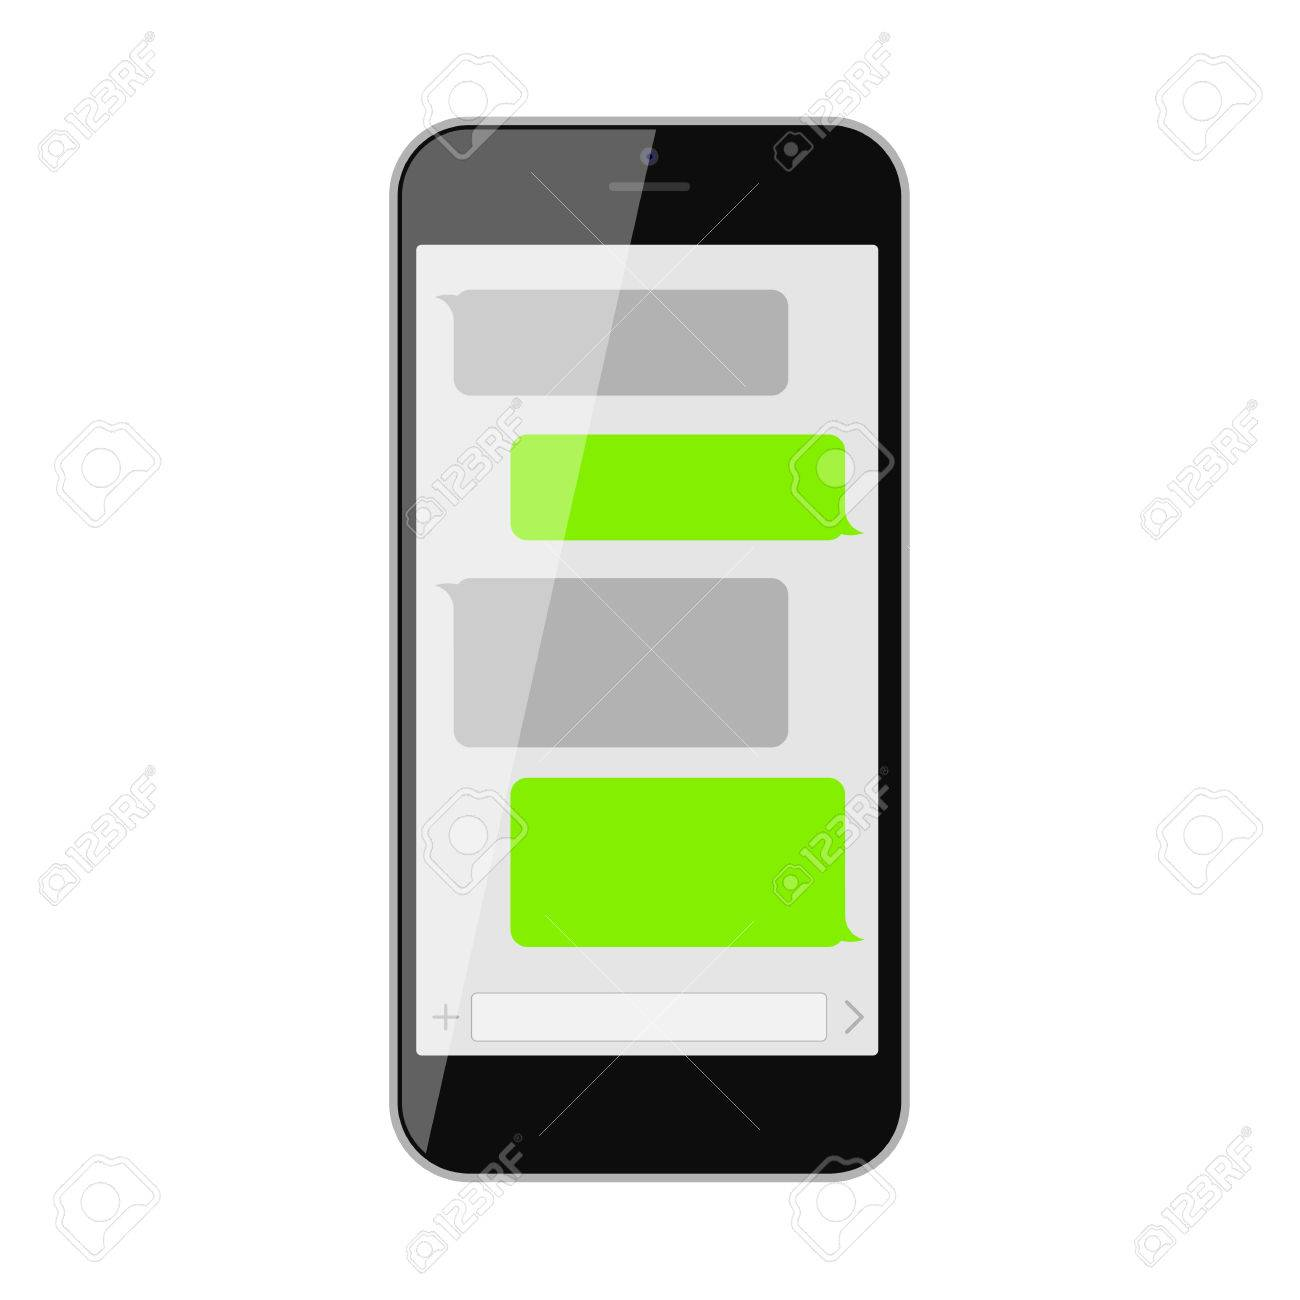 Smartphone text messaging  Template blank text bubbles  Social